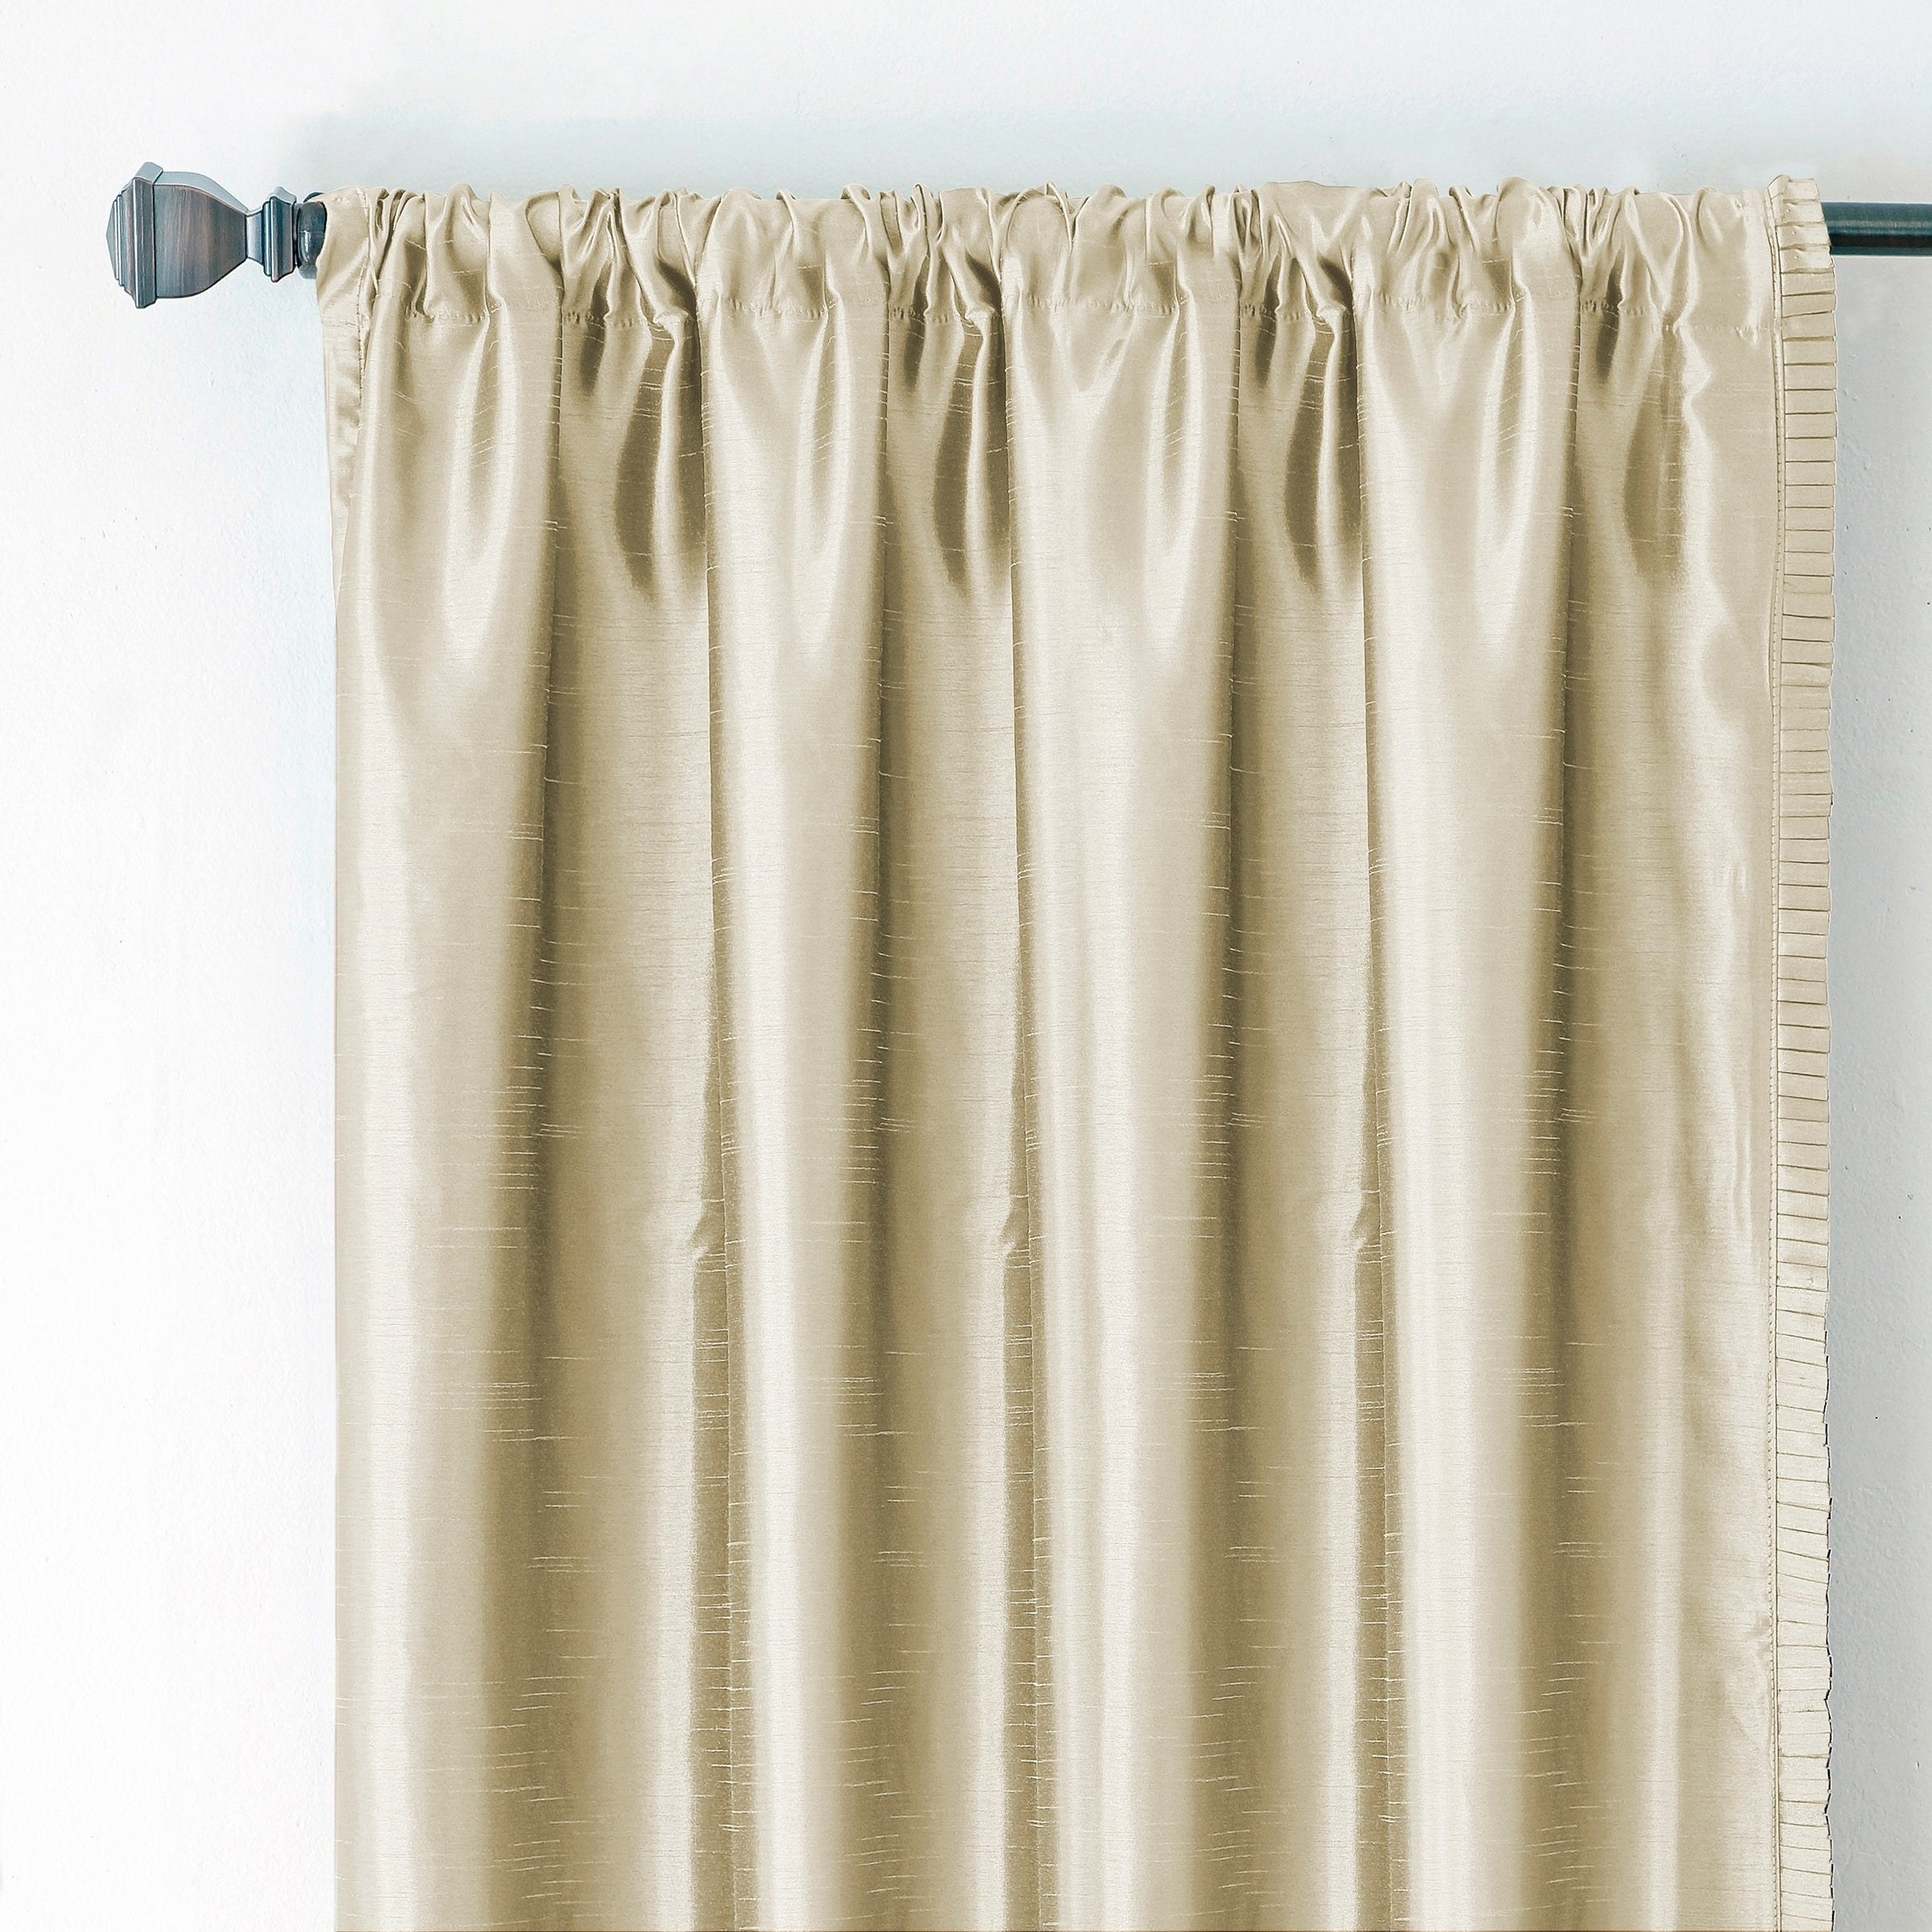 Current Elrene Versailles Pleated Blackout Curtain Panels Regarding Elrene Versailles Pleated Blackout Curtain Panel (View 6 of 20)